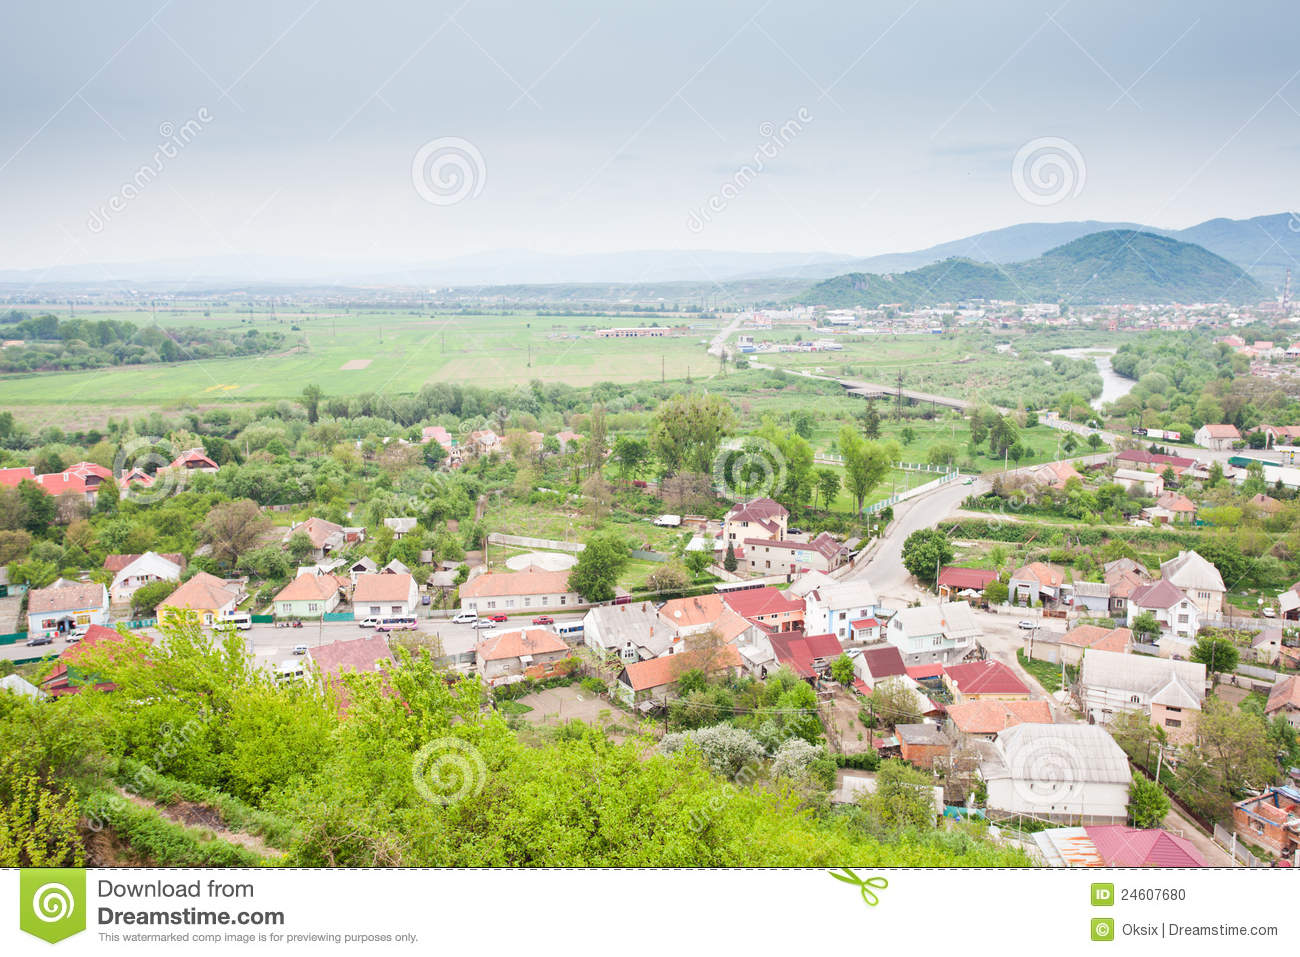 Mukachevo Stock Photos, Images, & Pictures.